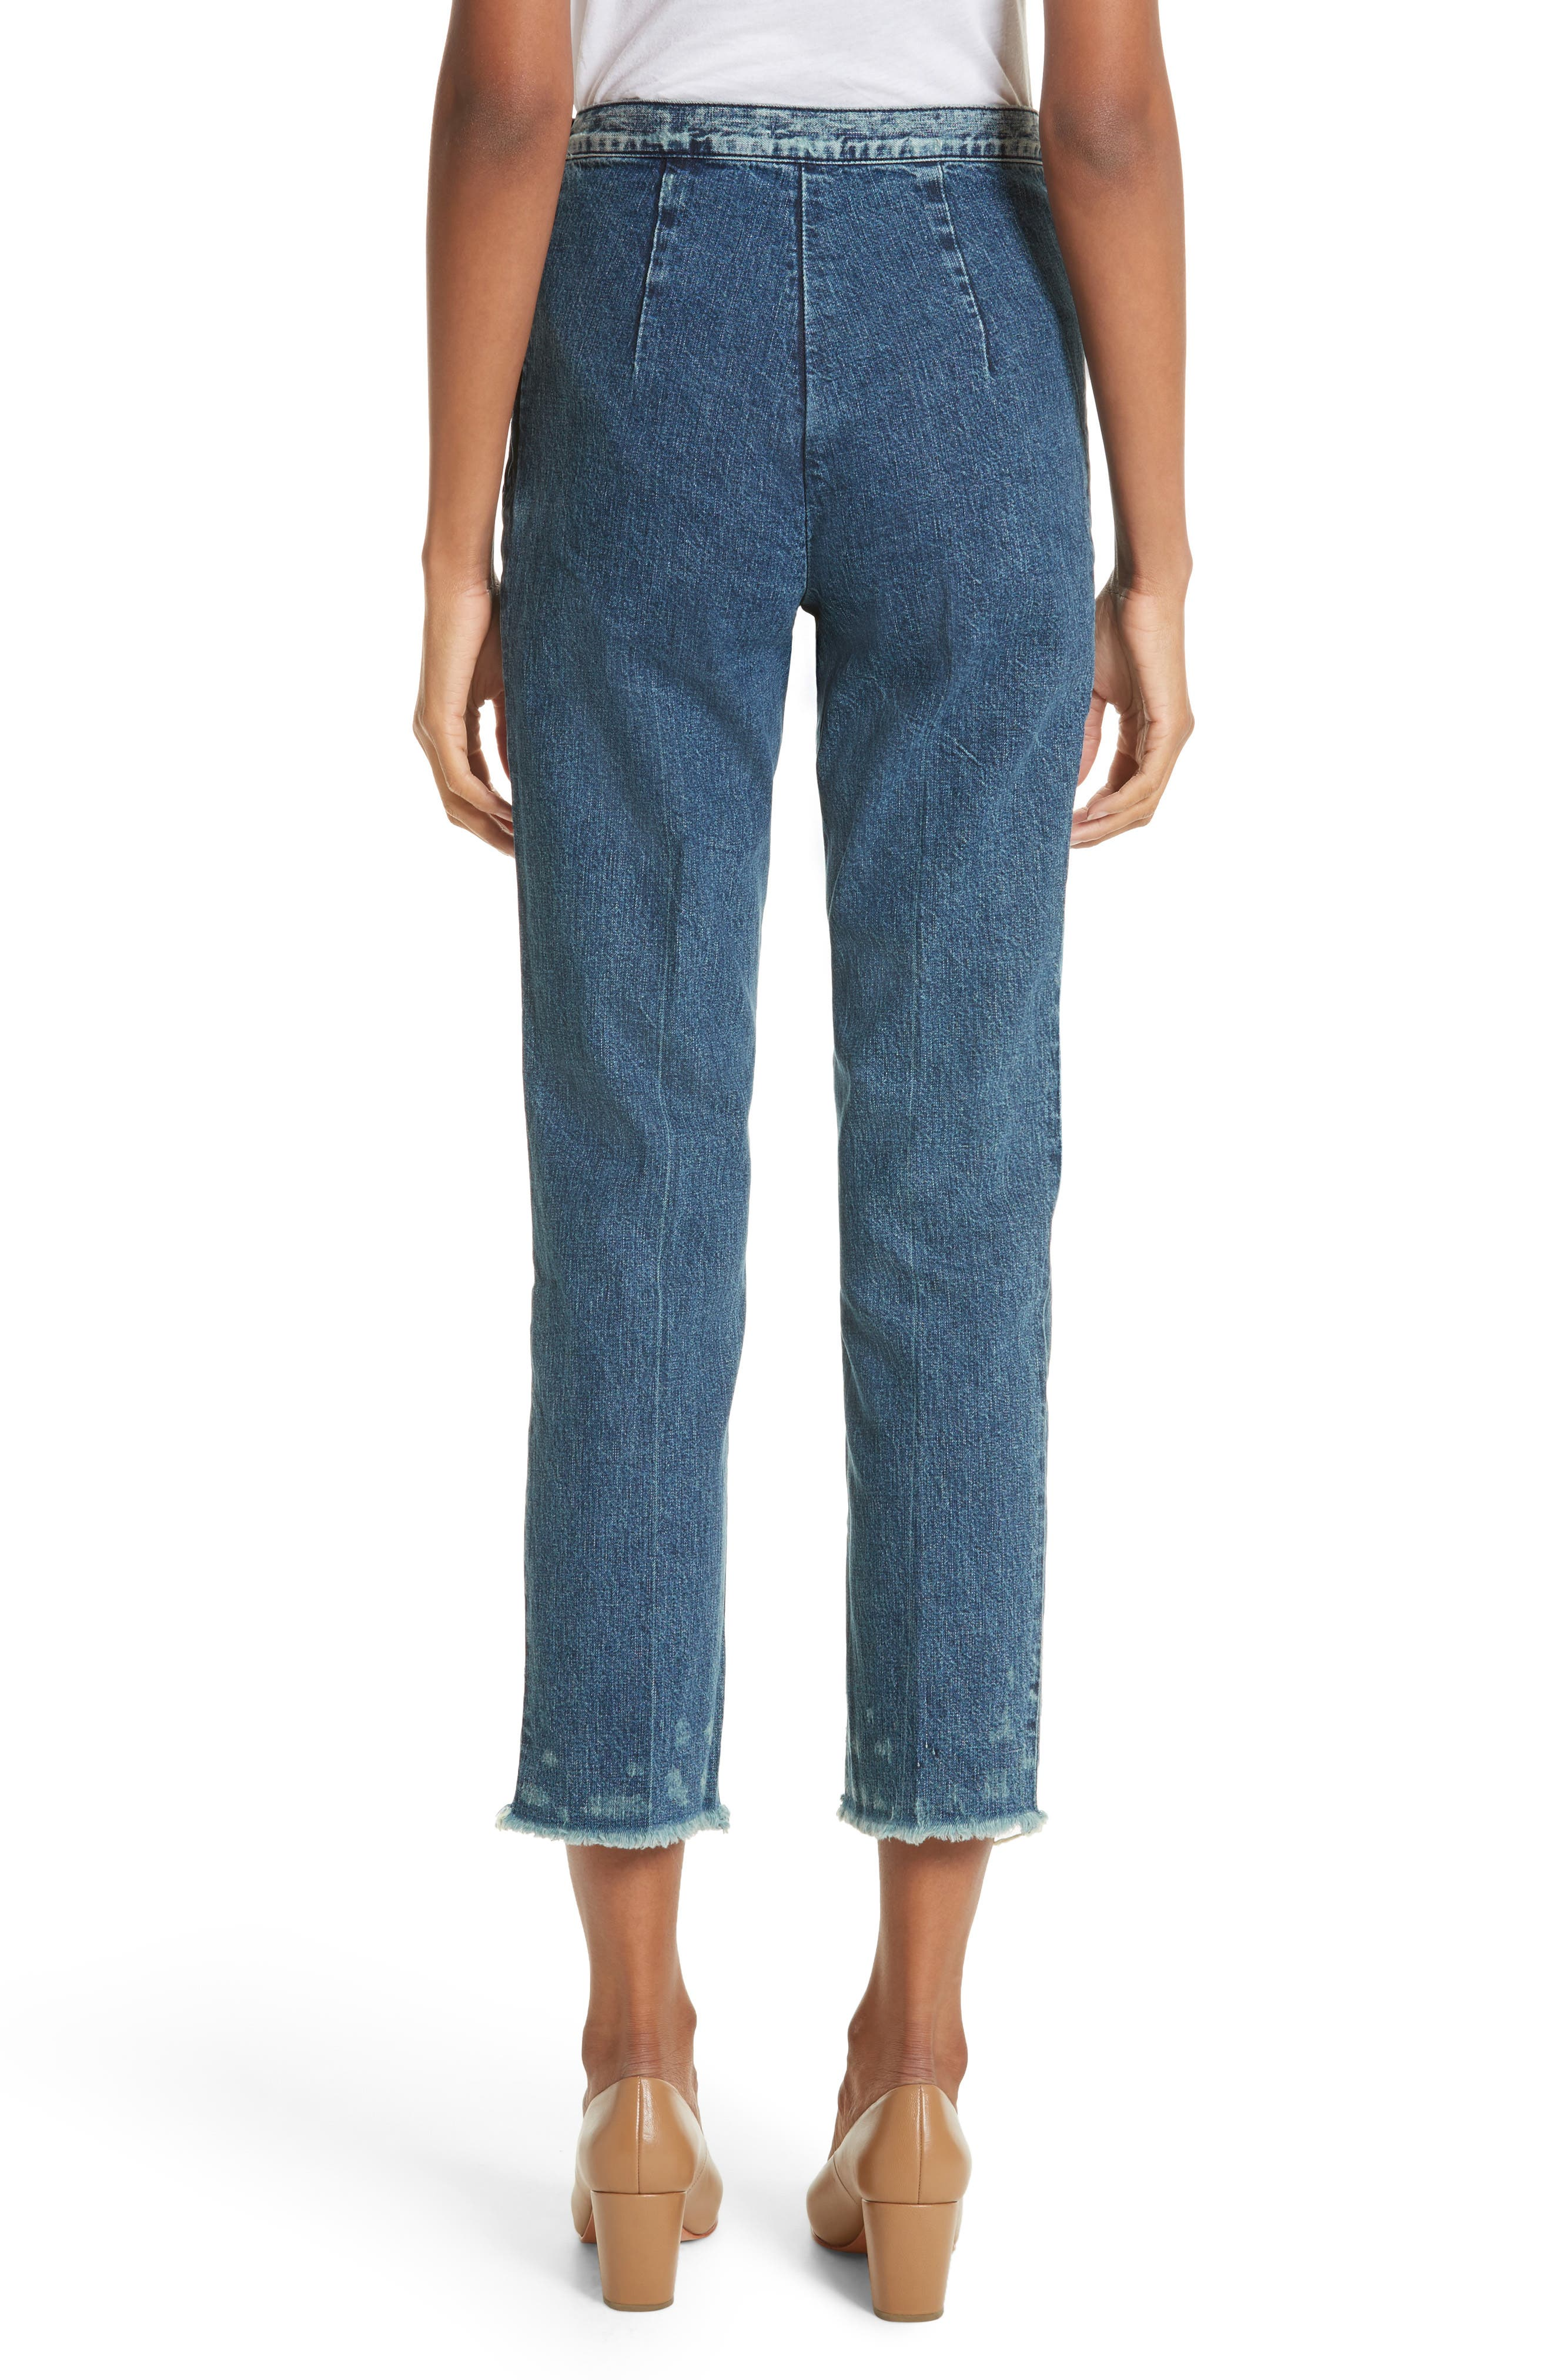 Fletcher Slim Straight Cropped Jeans,                             Alternate thumbnail 2, color,                             420